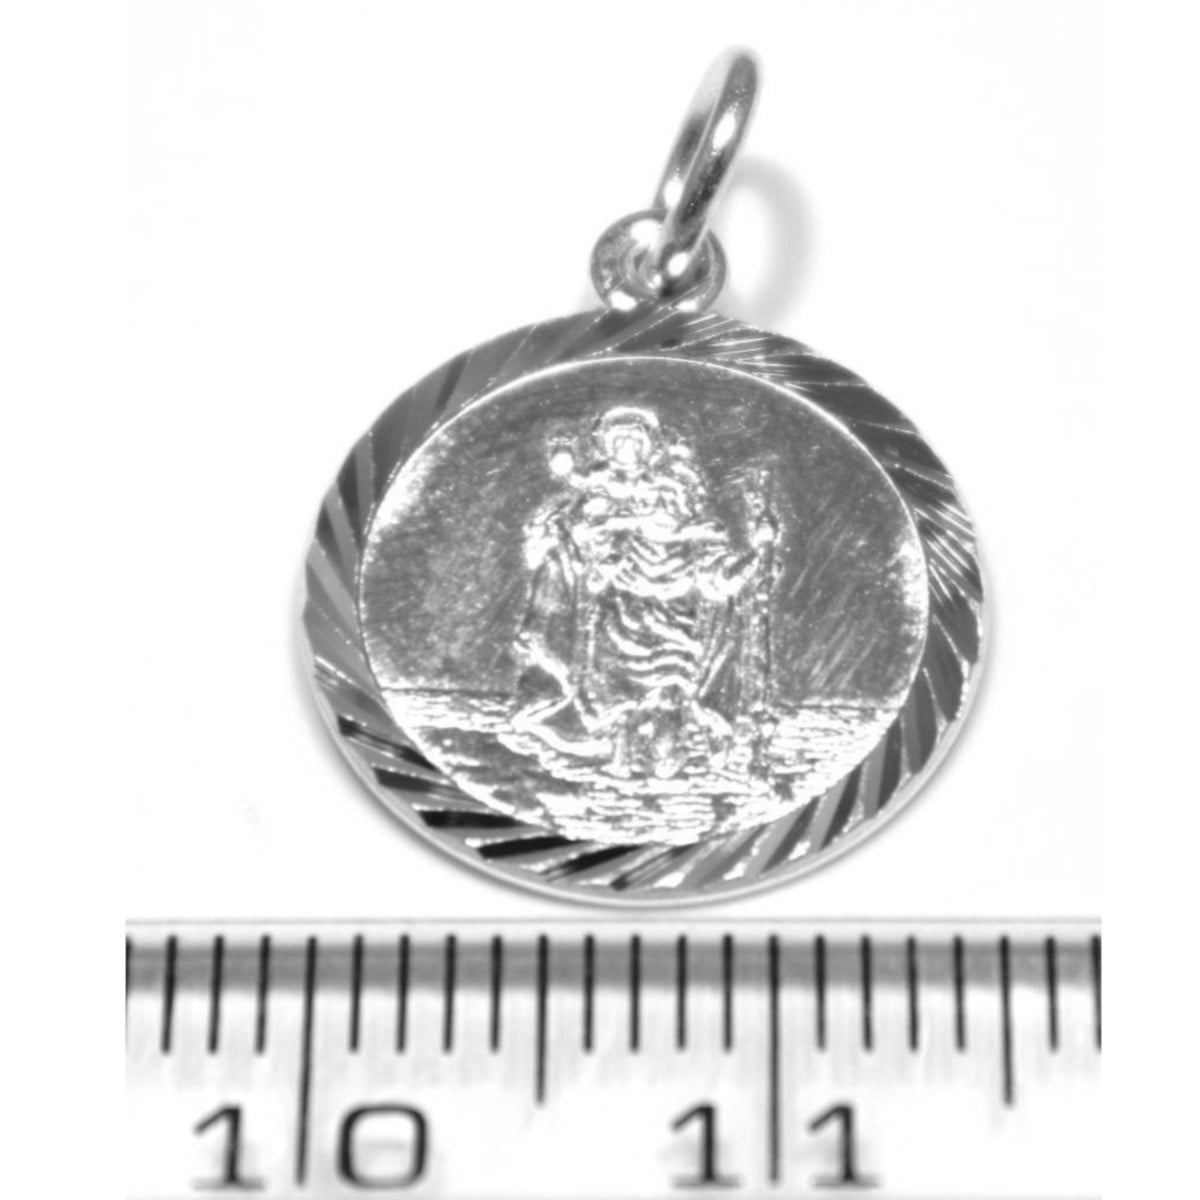 St Christopher pendant charm appx 15mm across in sterling silver ruler